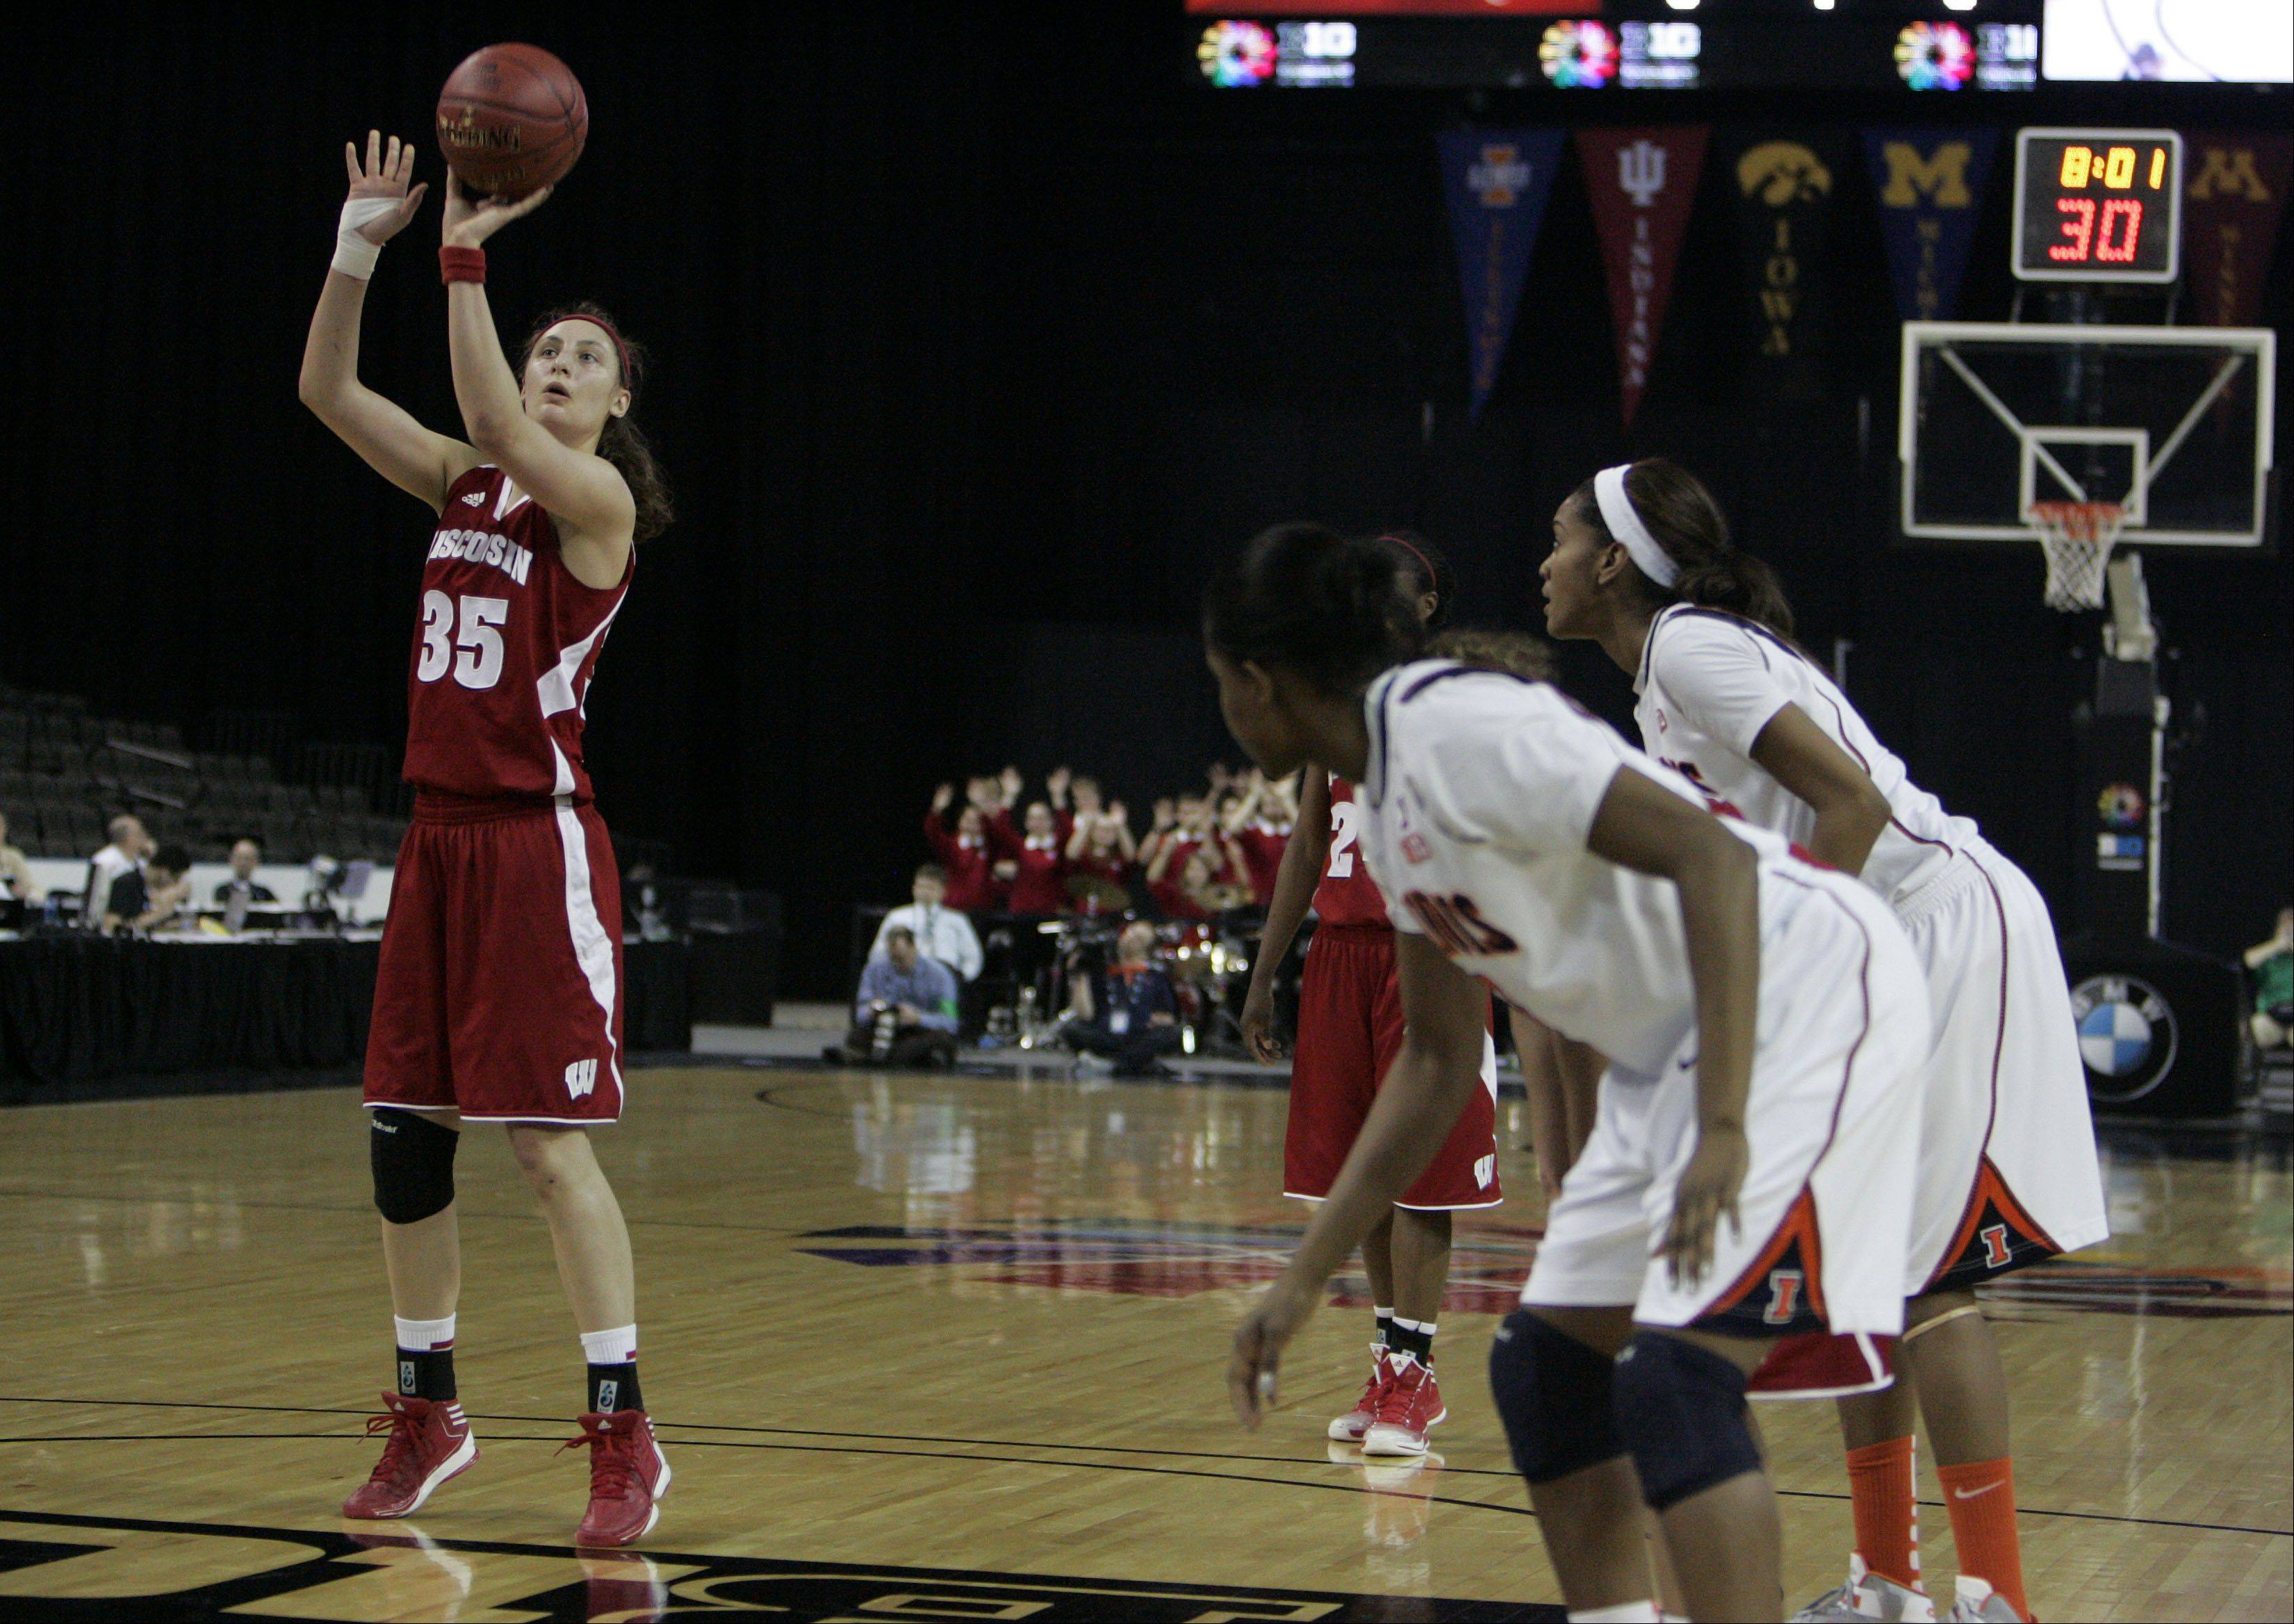 Badgers forward Jacki Gulczynski shoots a free-throw during action Thursday at the Big Ten Women's Basketball Tournament at the Sears Centre in Hoffman Estates. Wisconsin advanced with a 58-57 win.